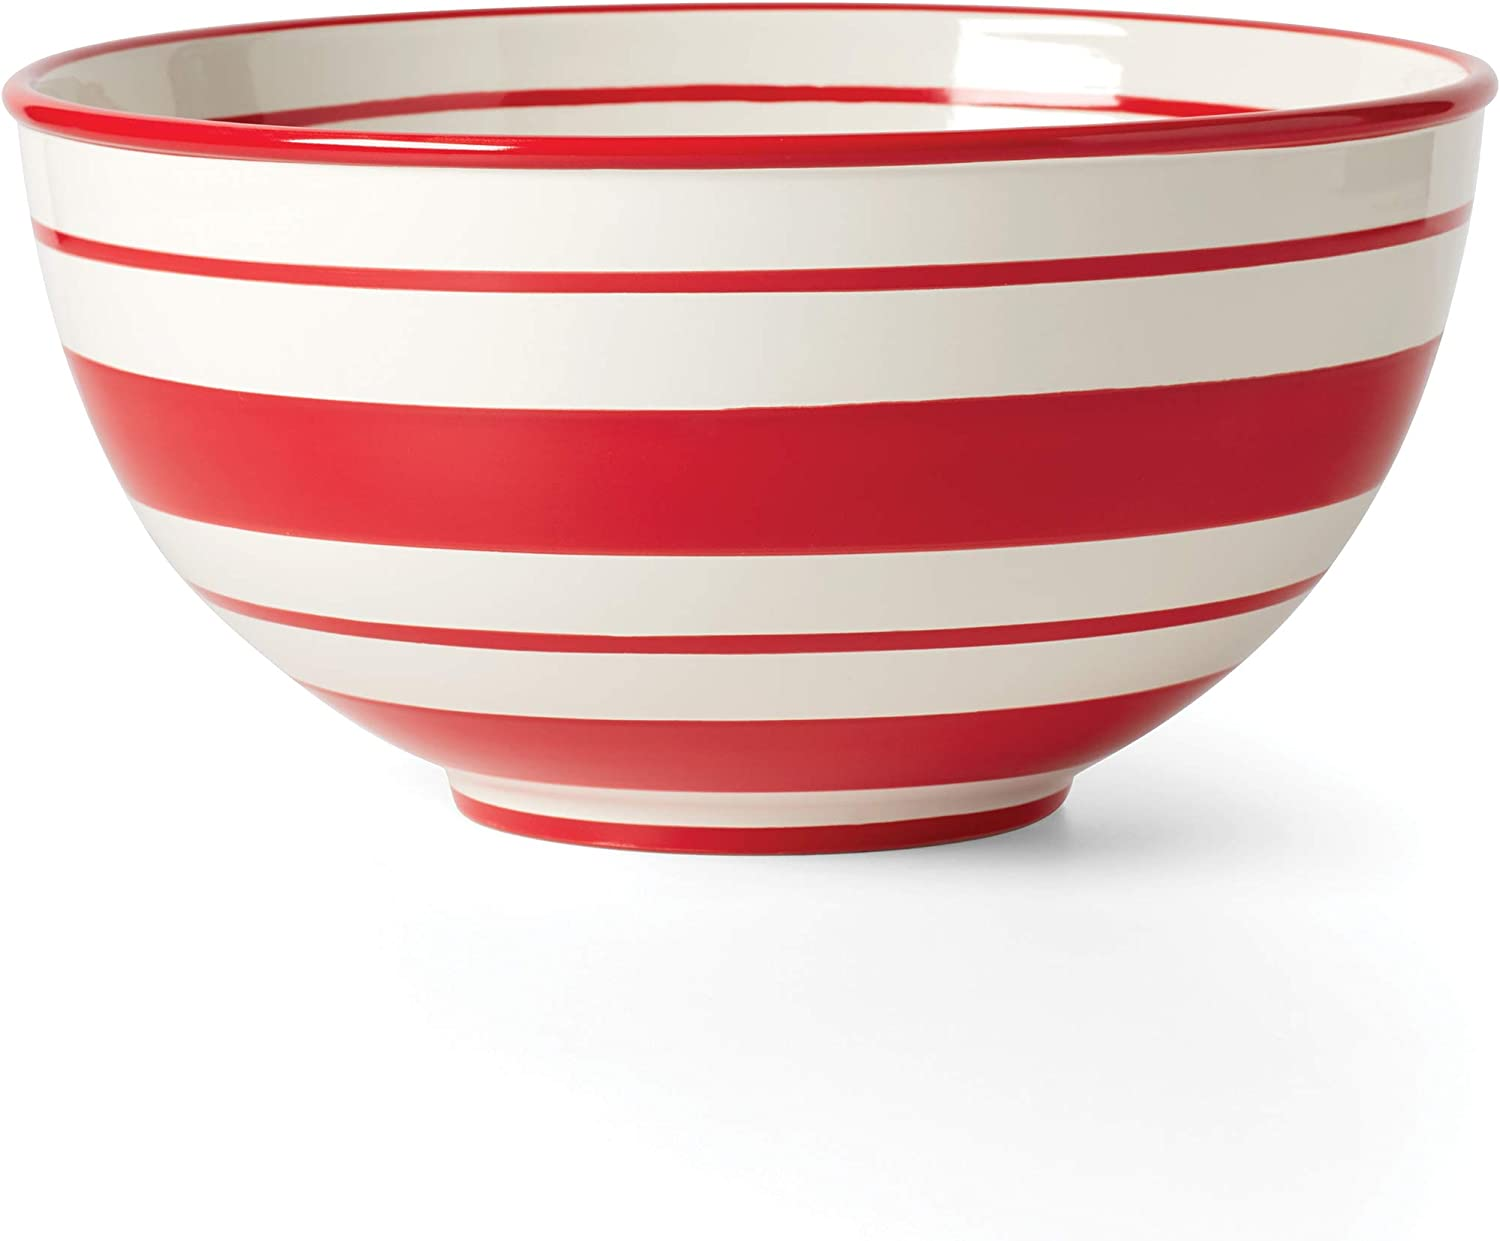 Lenox Holiday List price Stripe Mixing Bowl LB 8.0 Red Tampa Mall Green